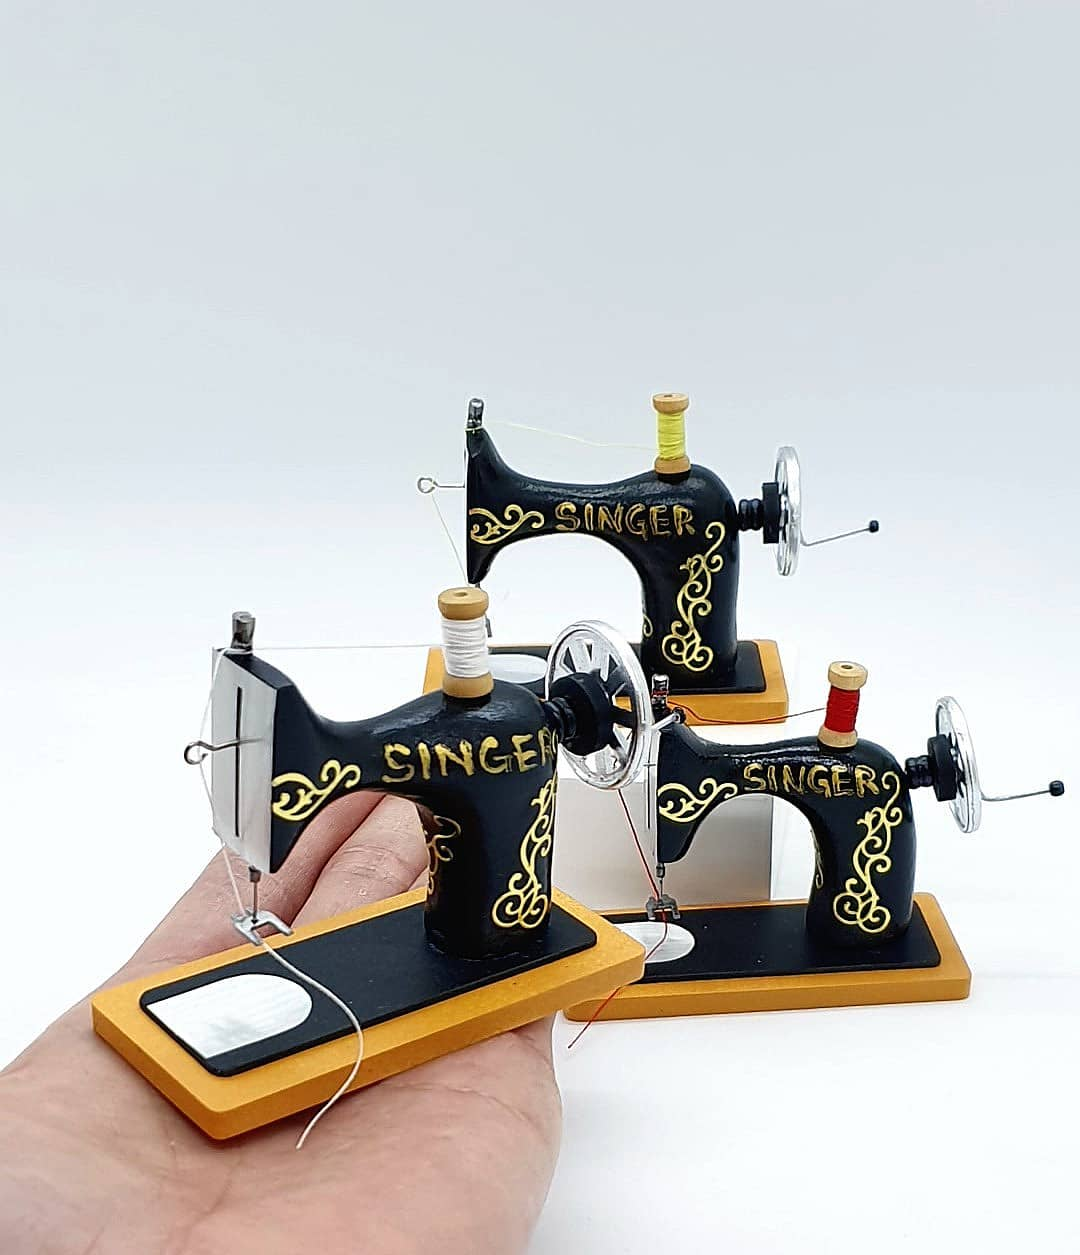 8 sculpture miniature sewing machine sunny miniworld